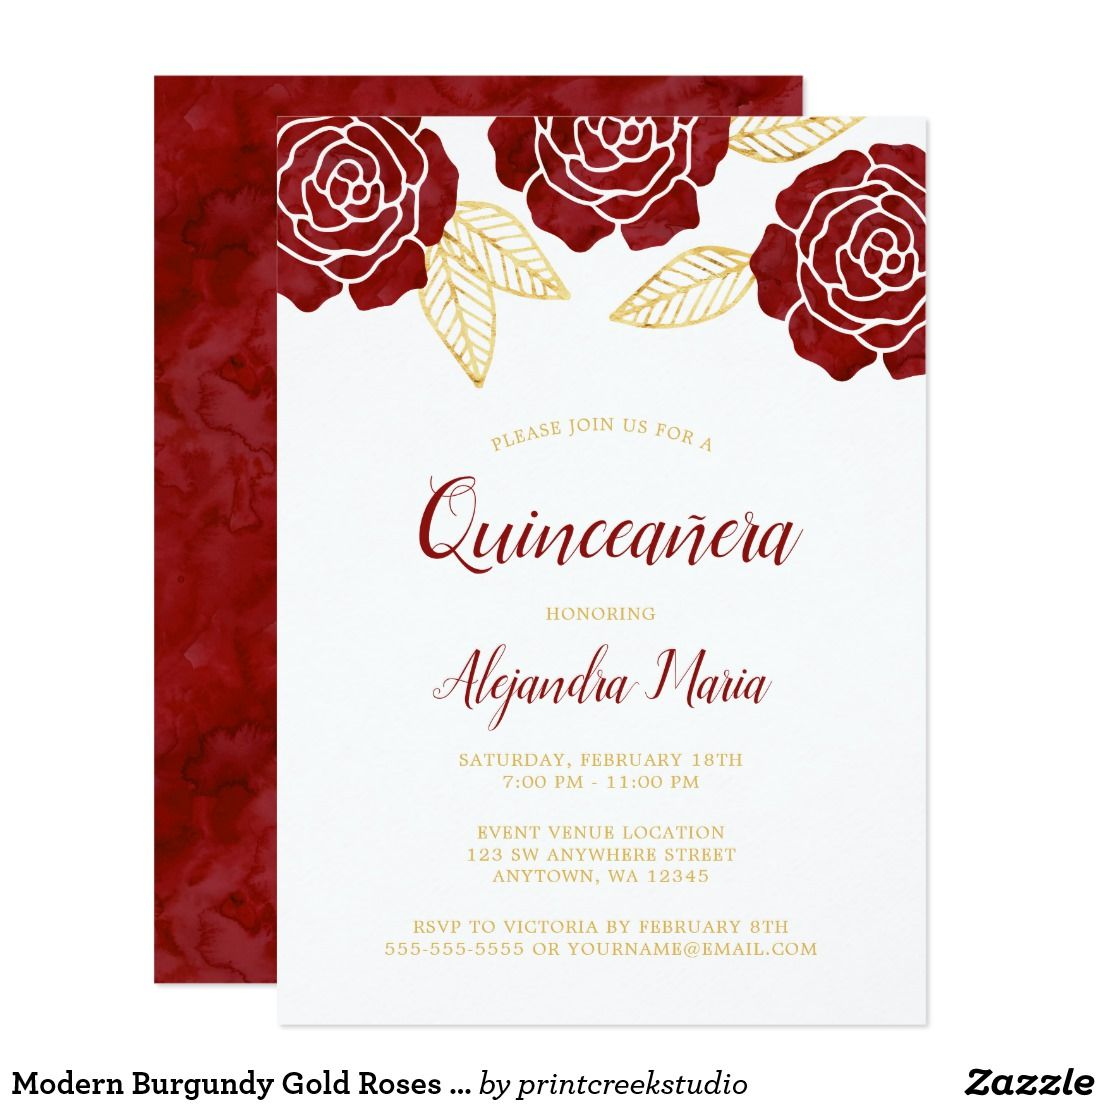 Modern Burgundy Gold Roses Quinceanera Invitations | Pinterest ...